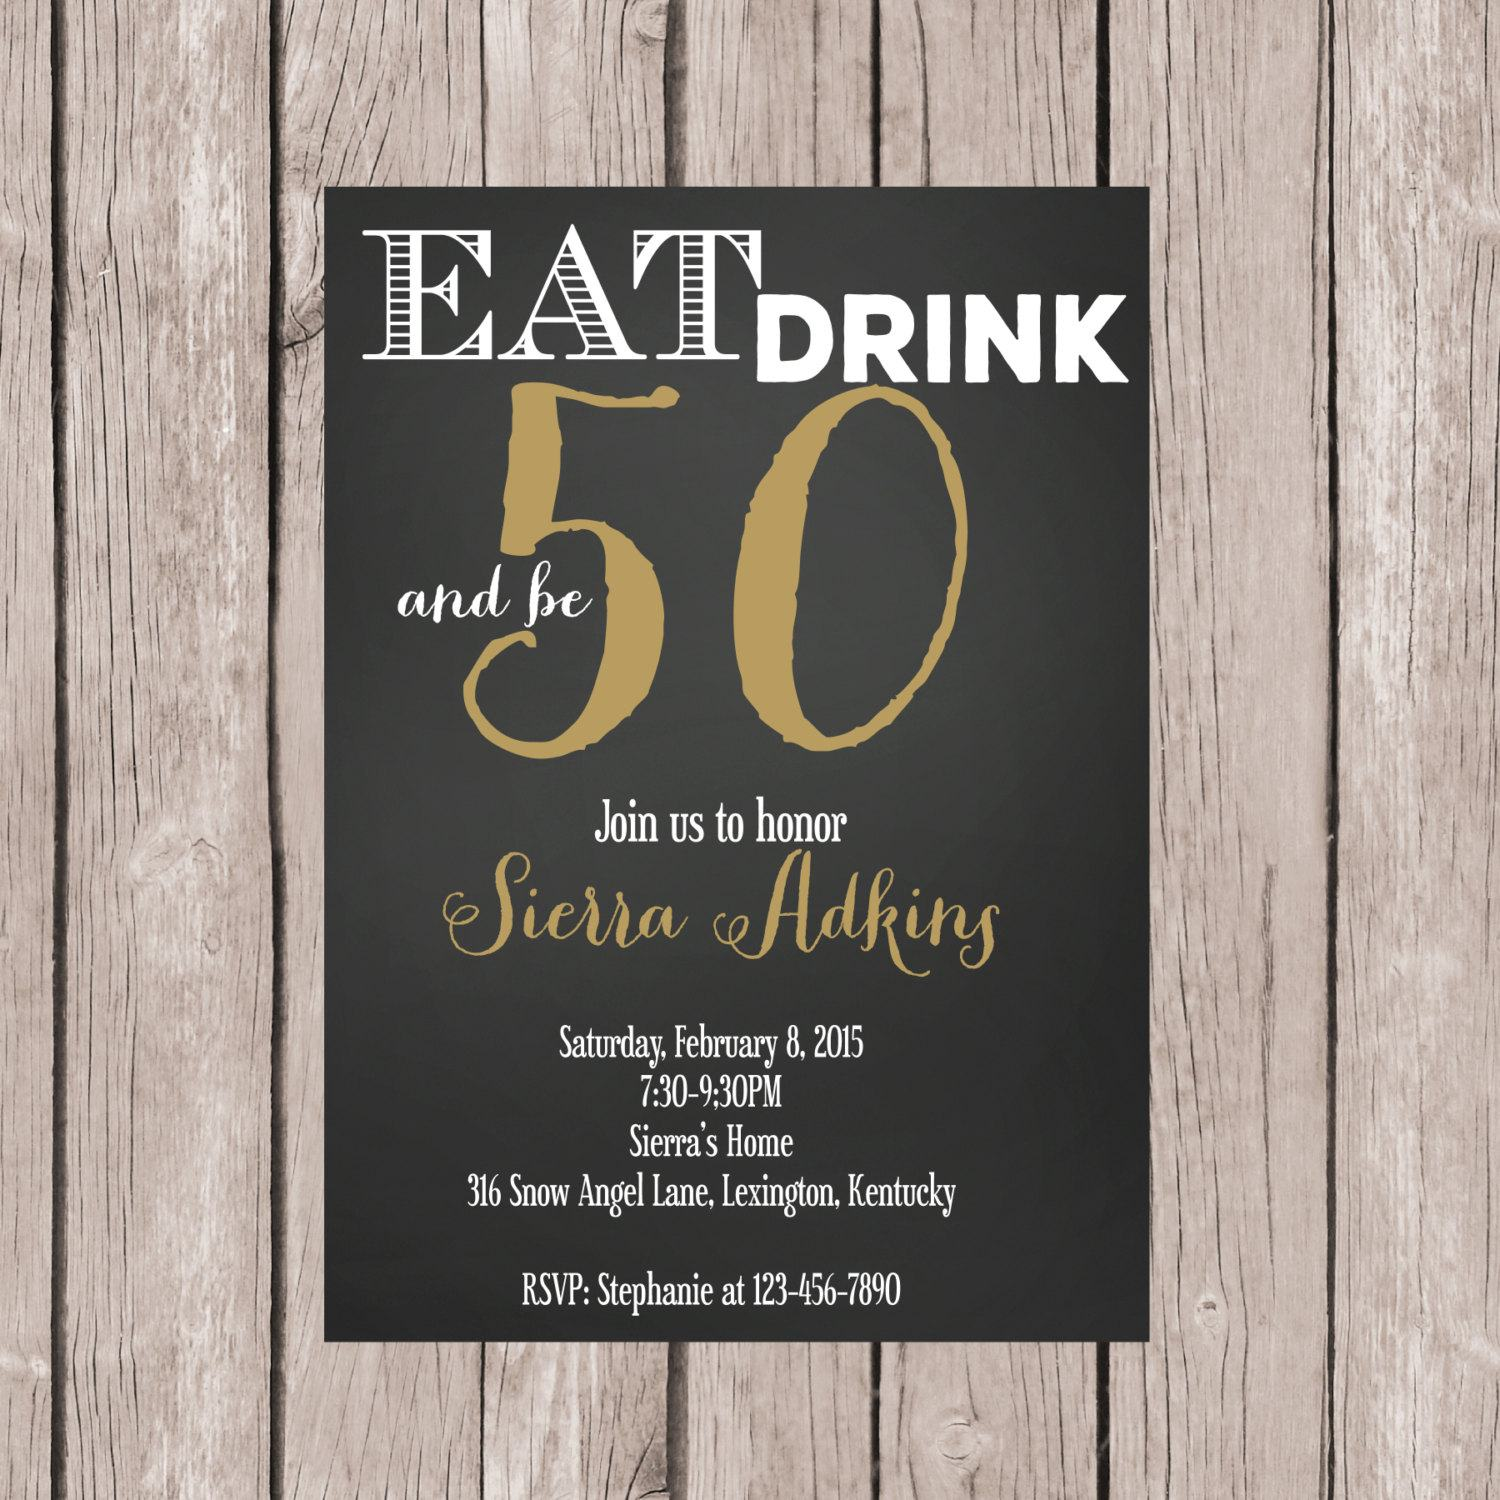 funny 50th birthday clip art free ; funny-50th-birthday-invitations-for-men-free-for-you-surprise-50th-birthday-clip-art-59-of-funny-50th-birthday-invitations-for-men